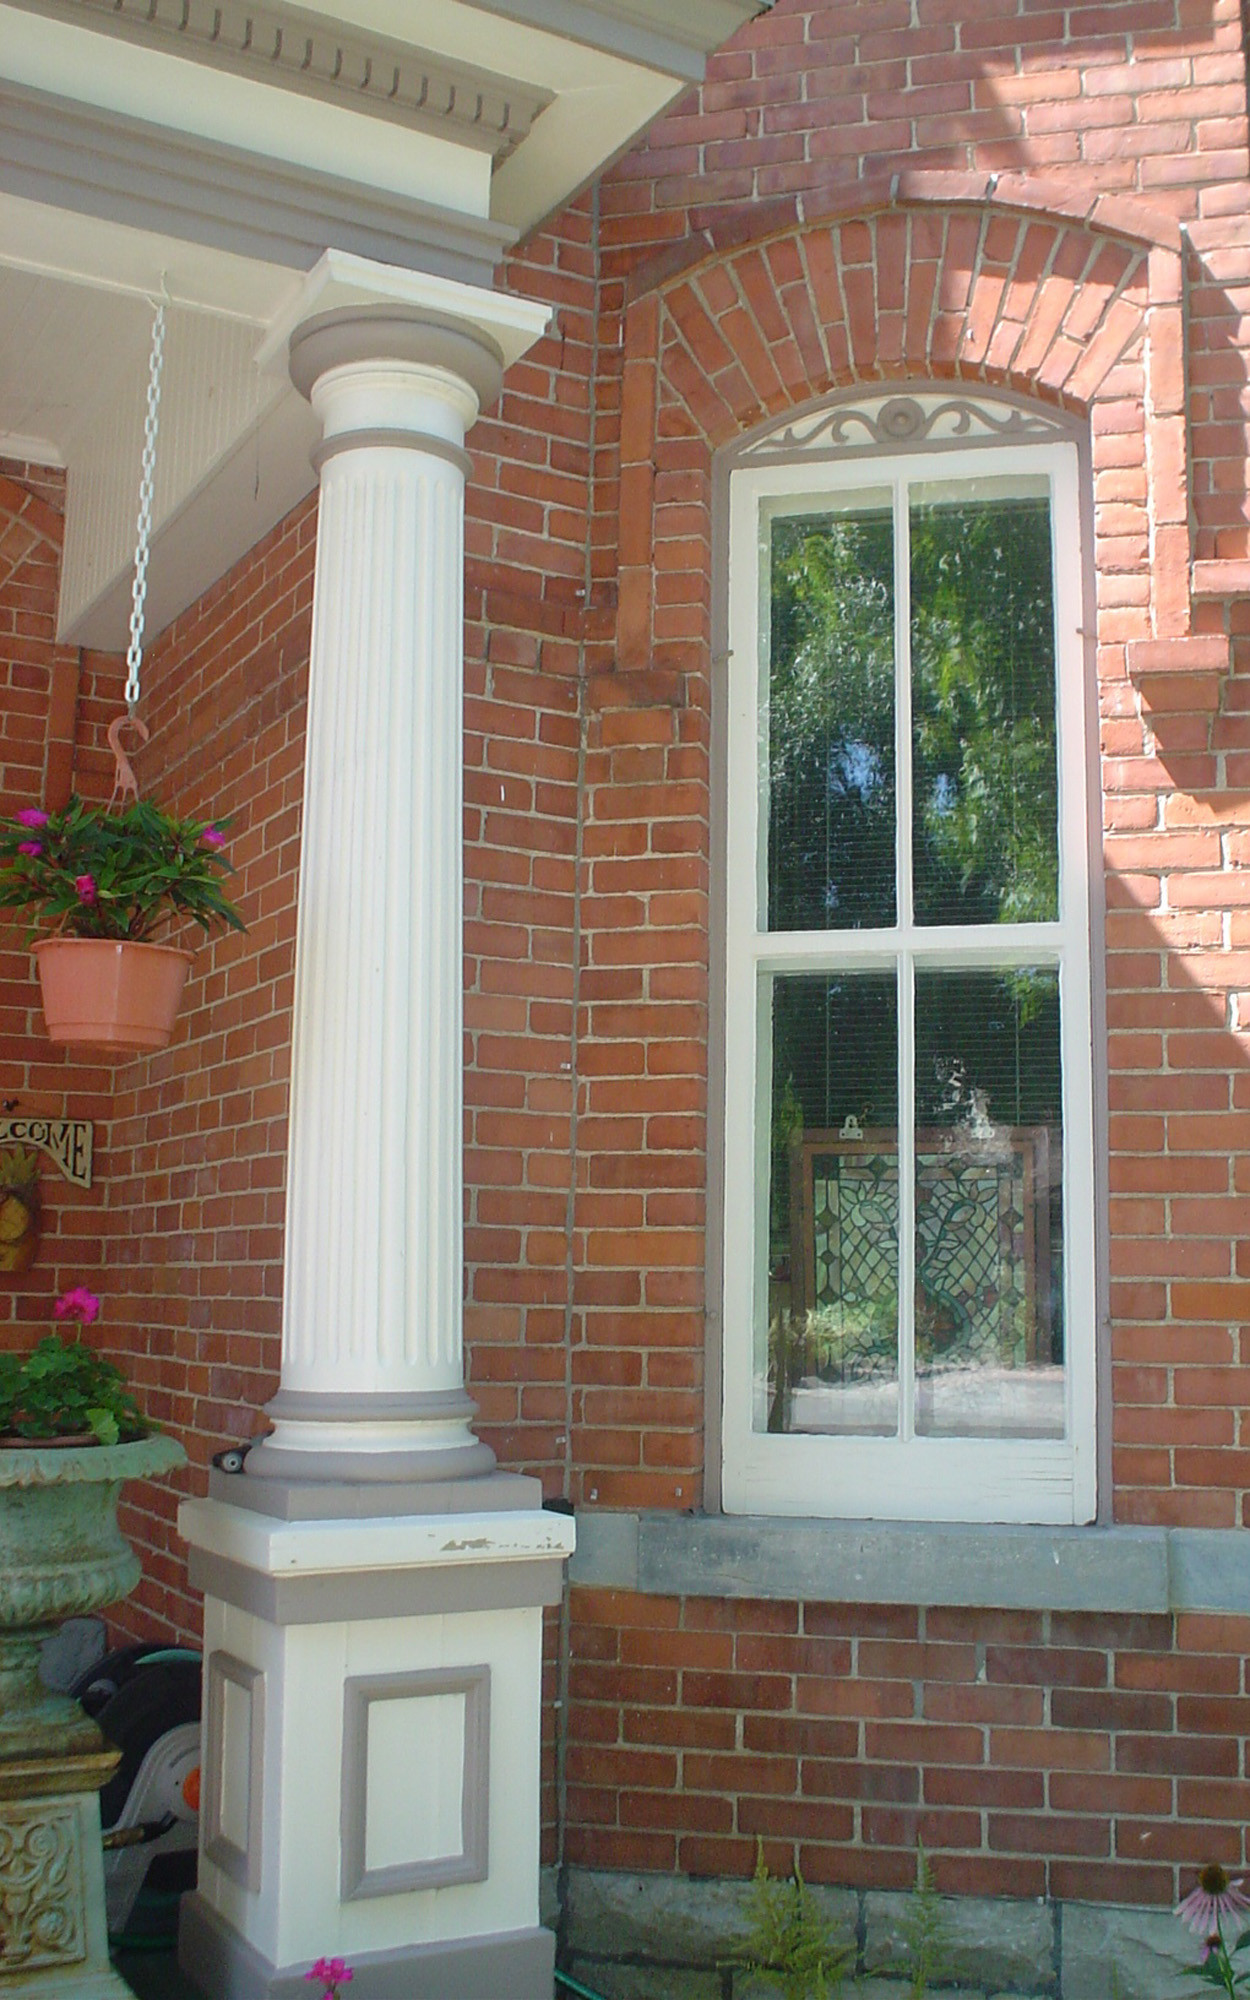 Detail of Windows and Front Porch Support Column